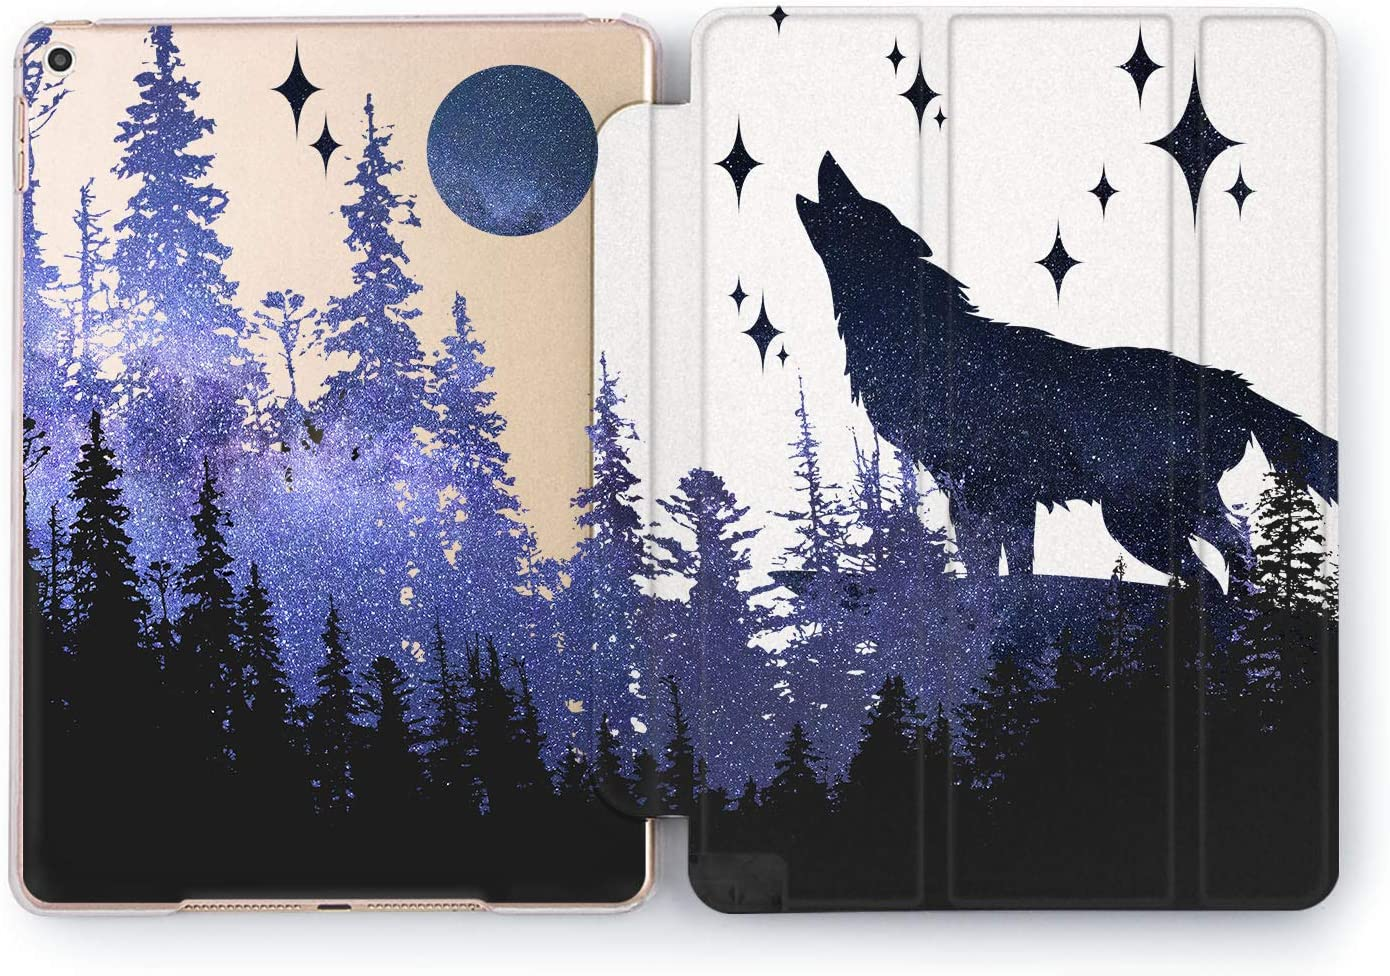 Wonder Wild Night Wolf Sky iPad 5th 6th Generation Tablet Nature Mini 1 2 3 4 Air 2 Pro 10.5 12.9 11 10.2 9.7 inch Smart Cover Trees Plants Space Blue Design Case Forest Purple Nature Beauty